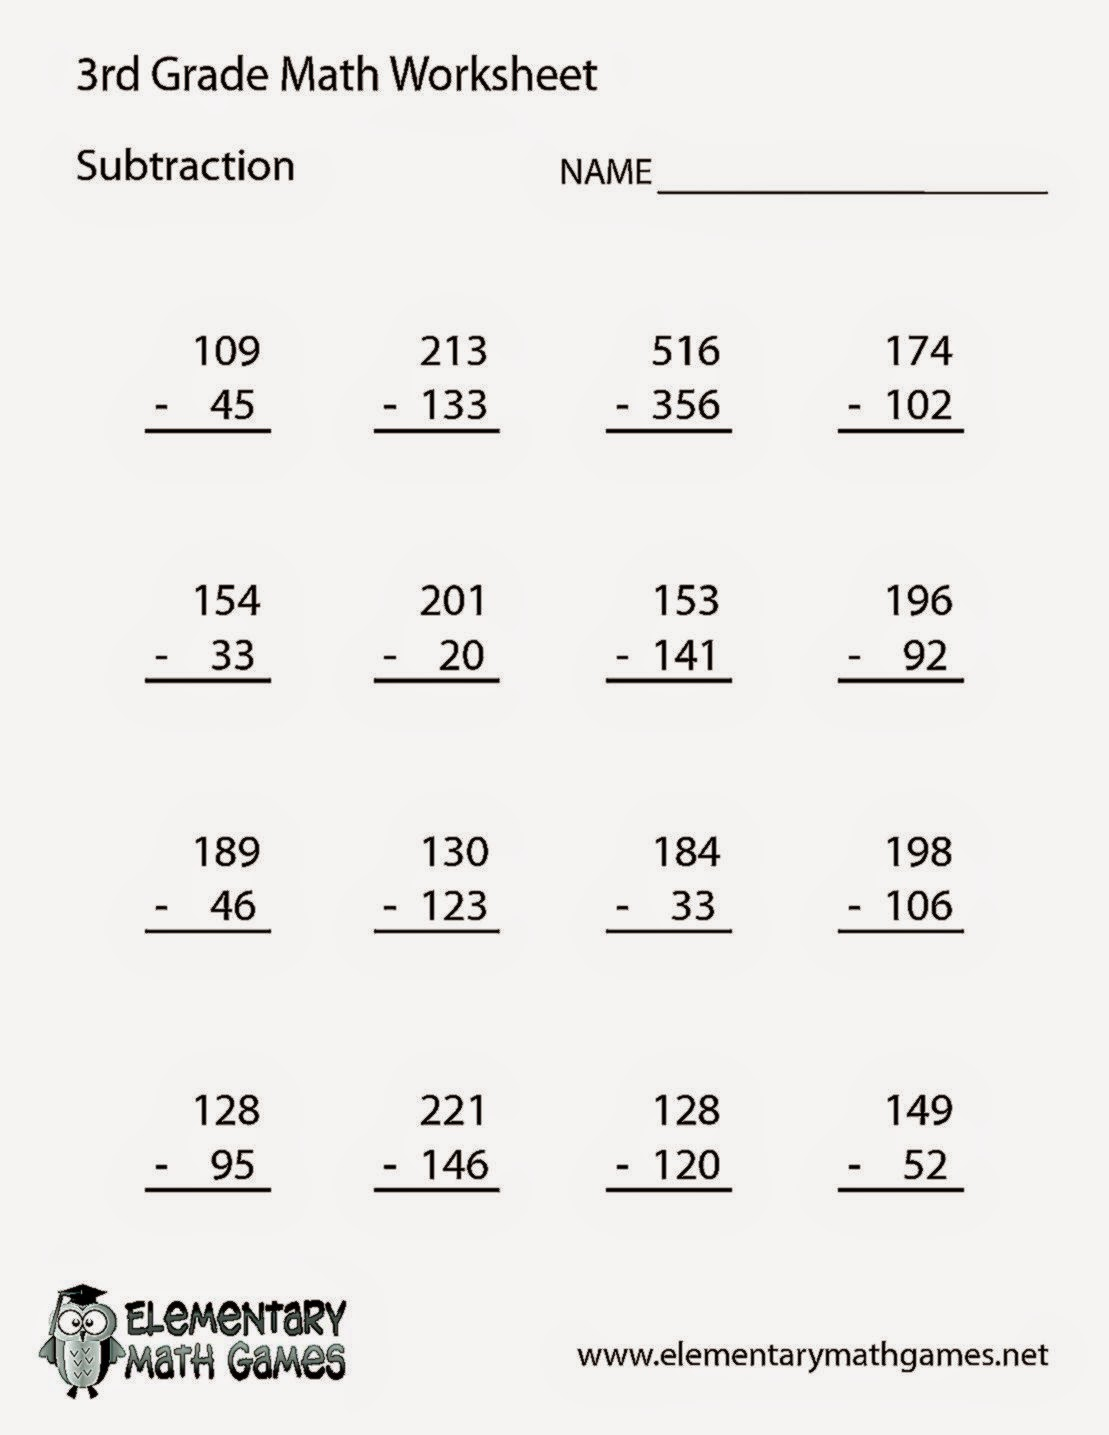 math worksheet : 3rd grade math worksheets  free coloring sheet : 3rd Grade Mental Math Worksheets